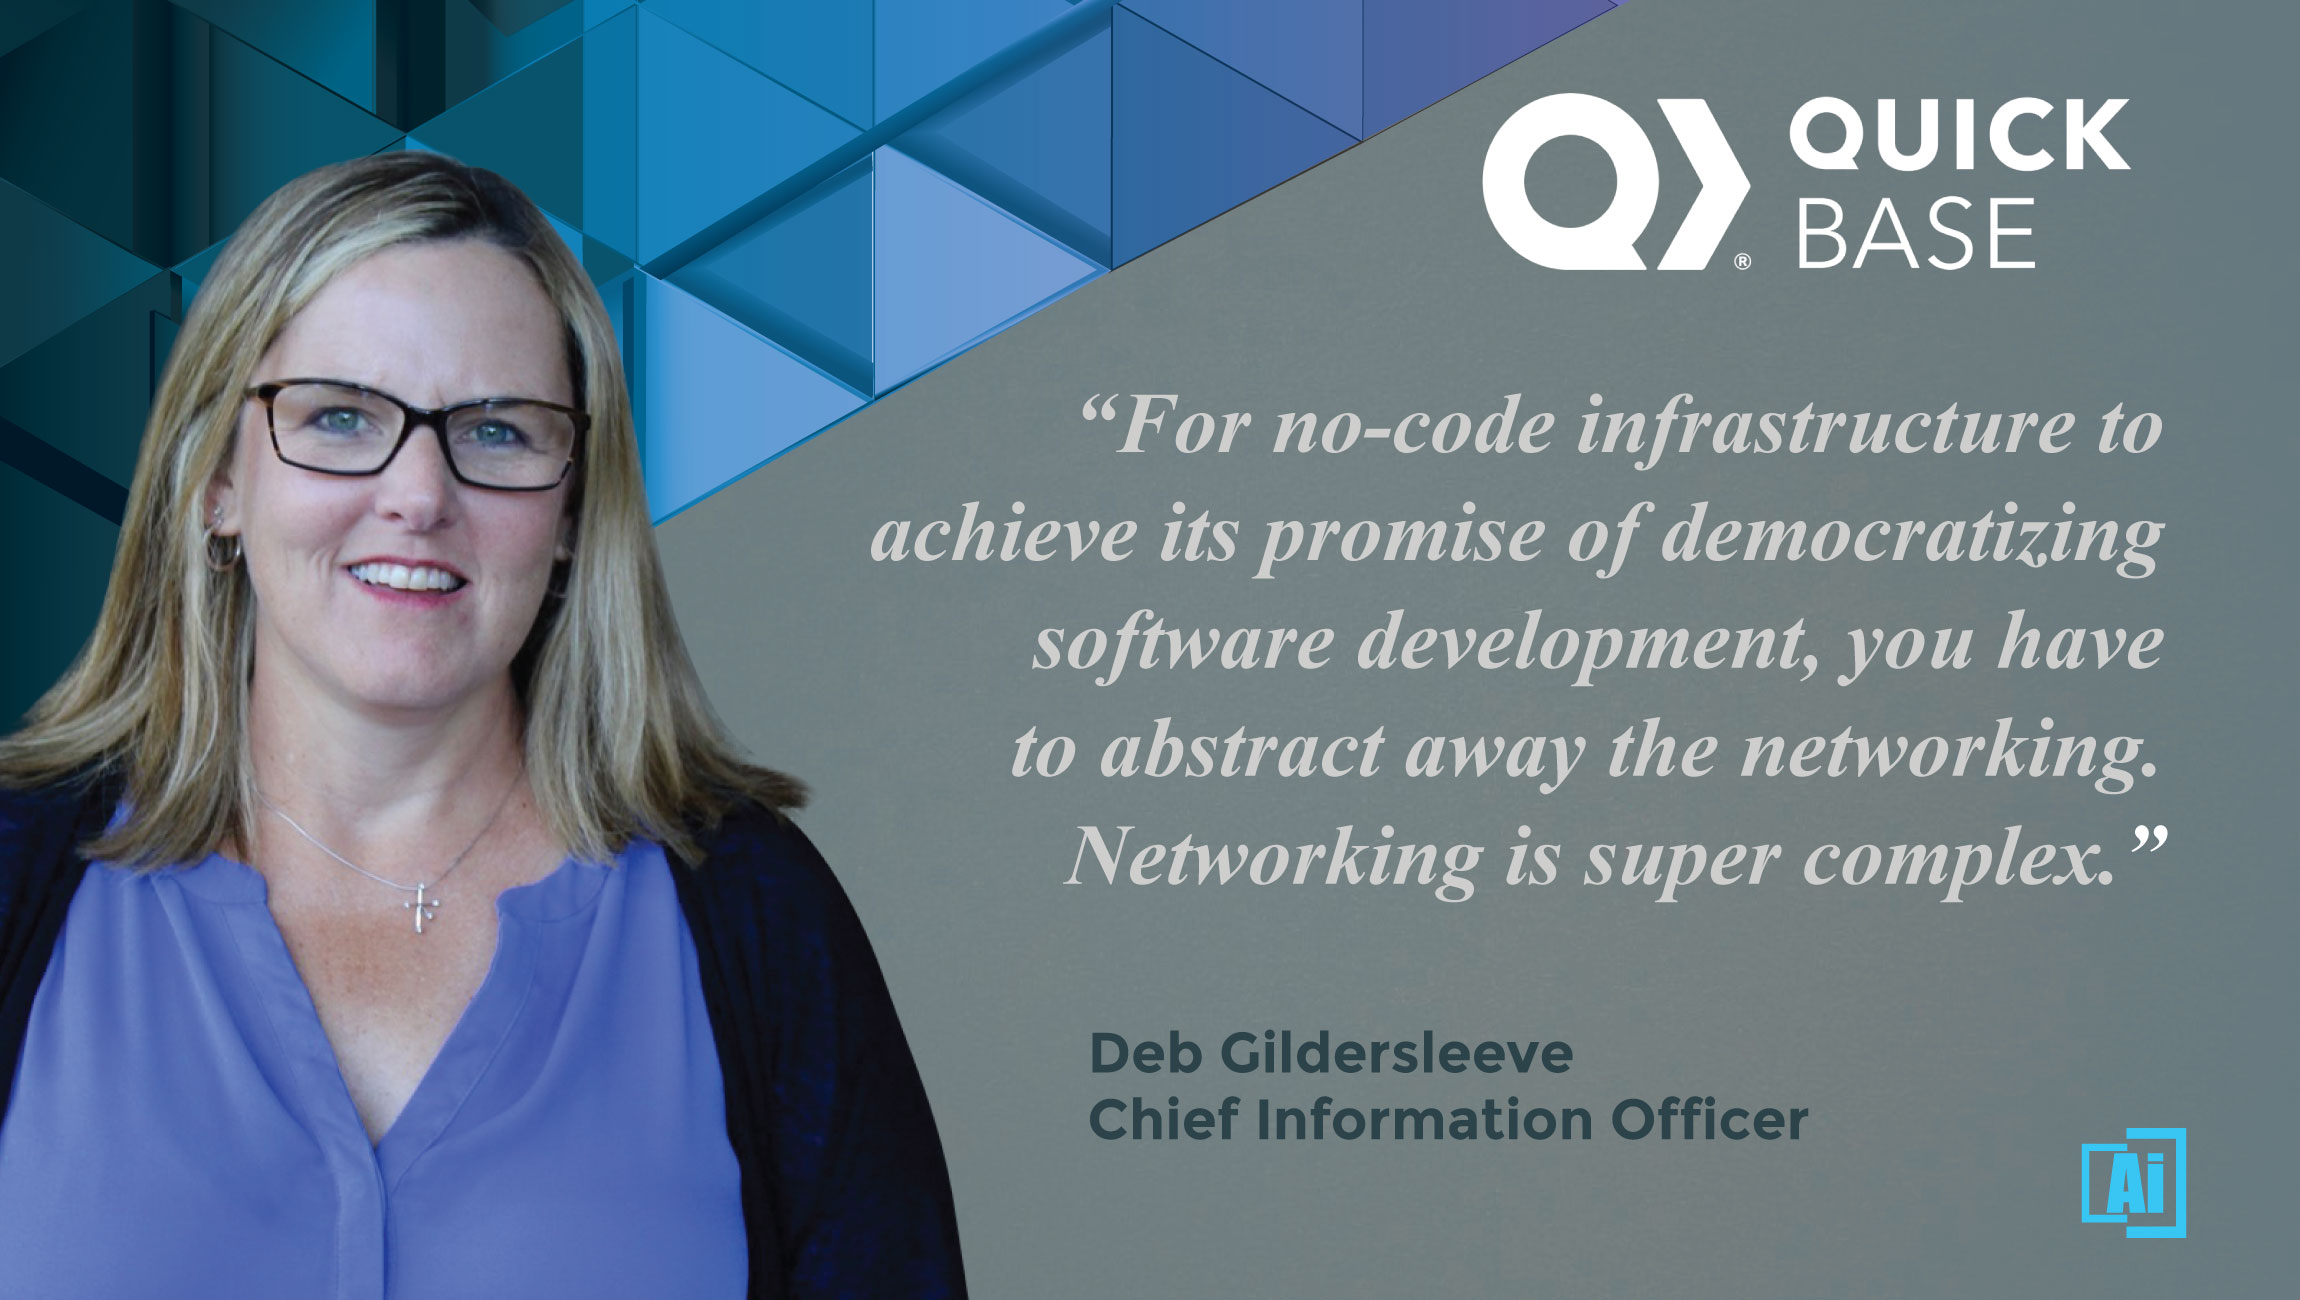 AiThority Interview With Deb Gildersleeve, Chief Information Officer at Quick Base